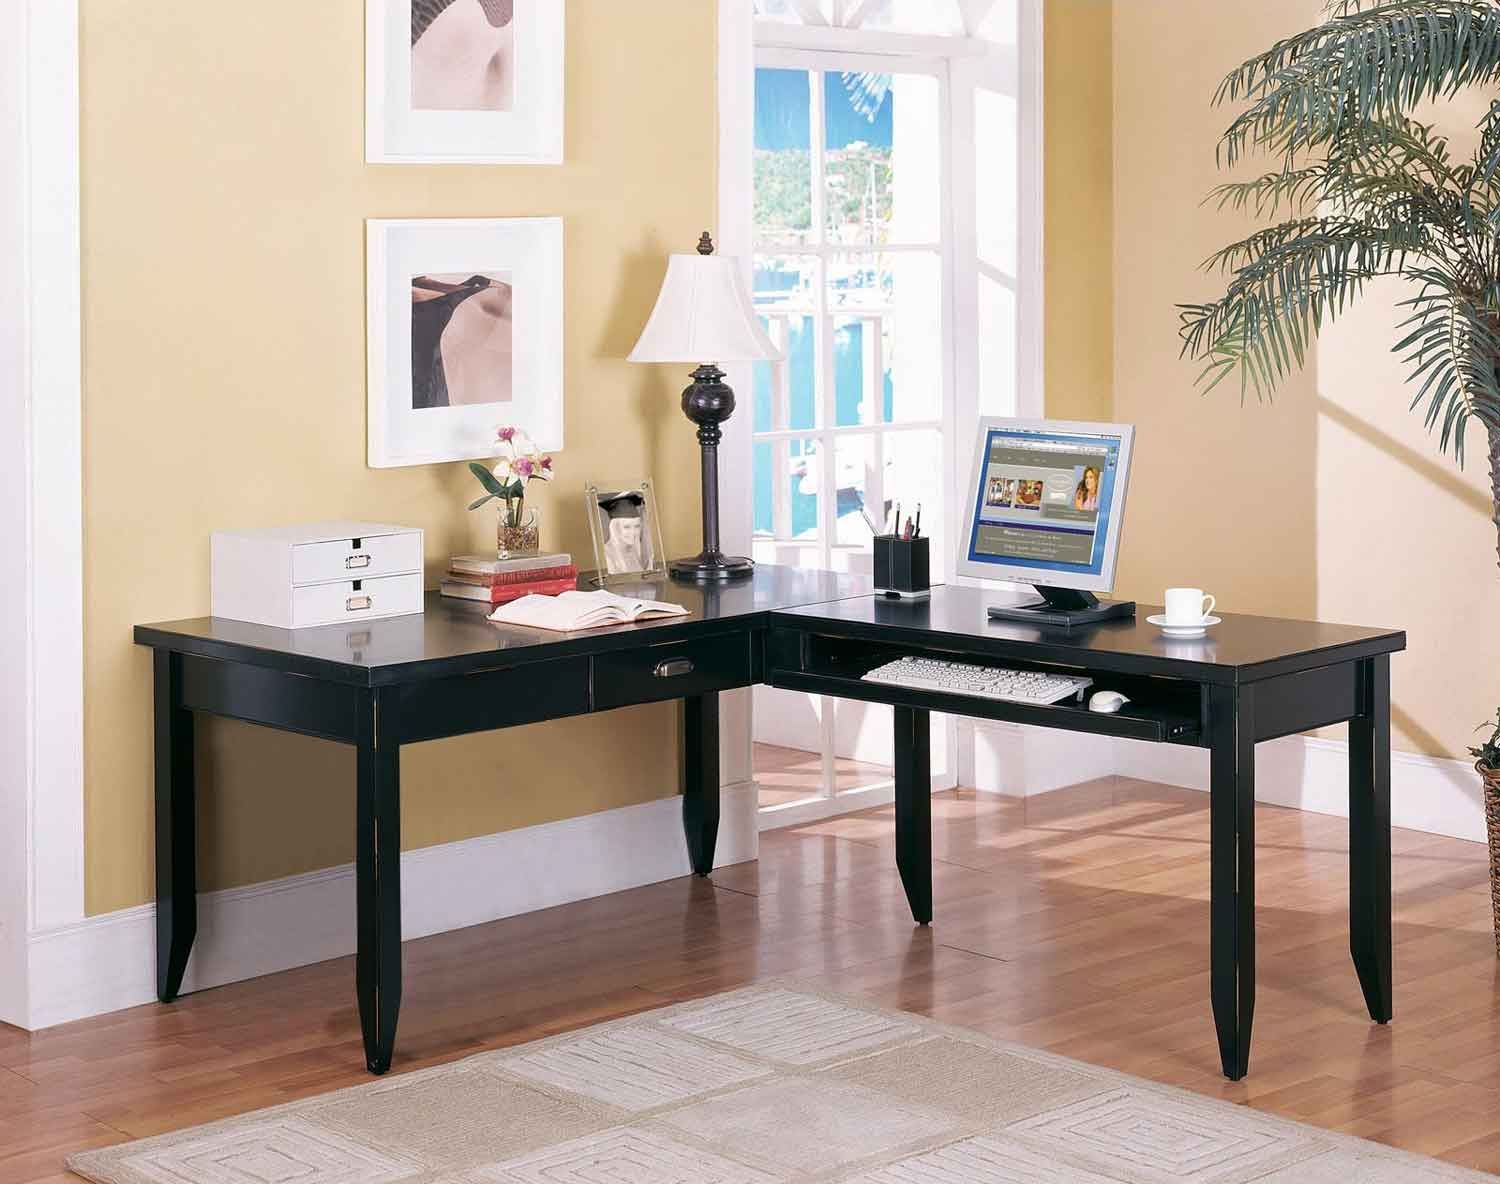 l shaped home office design Google Search Home office